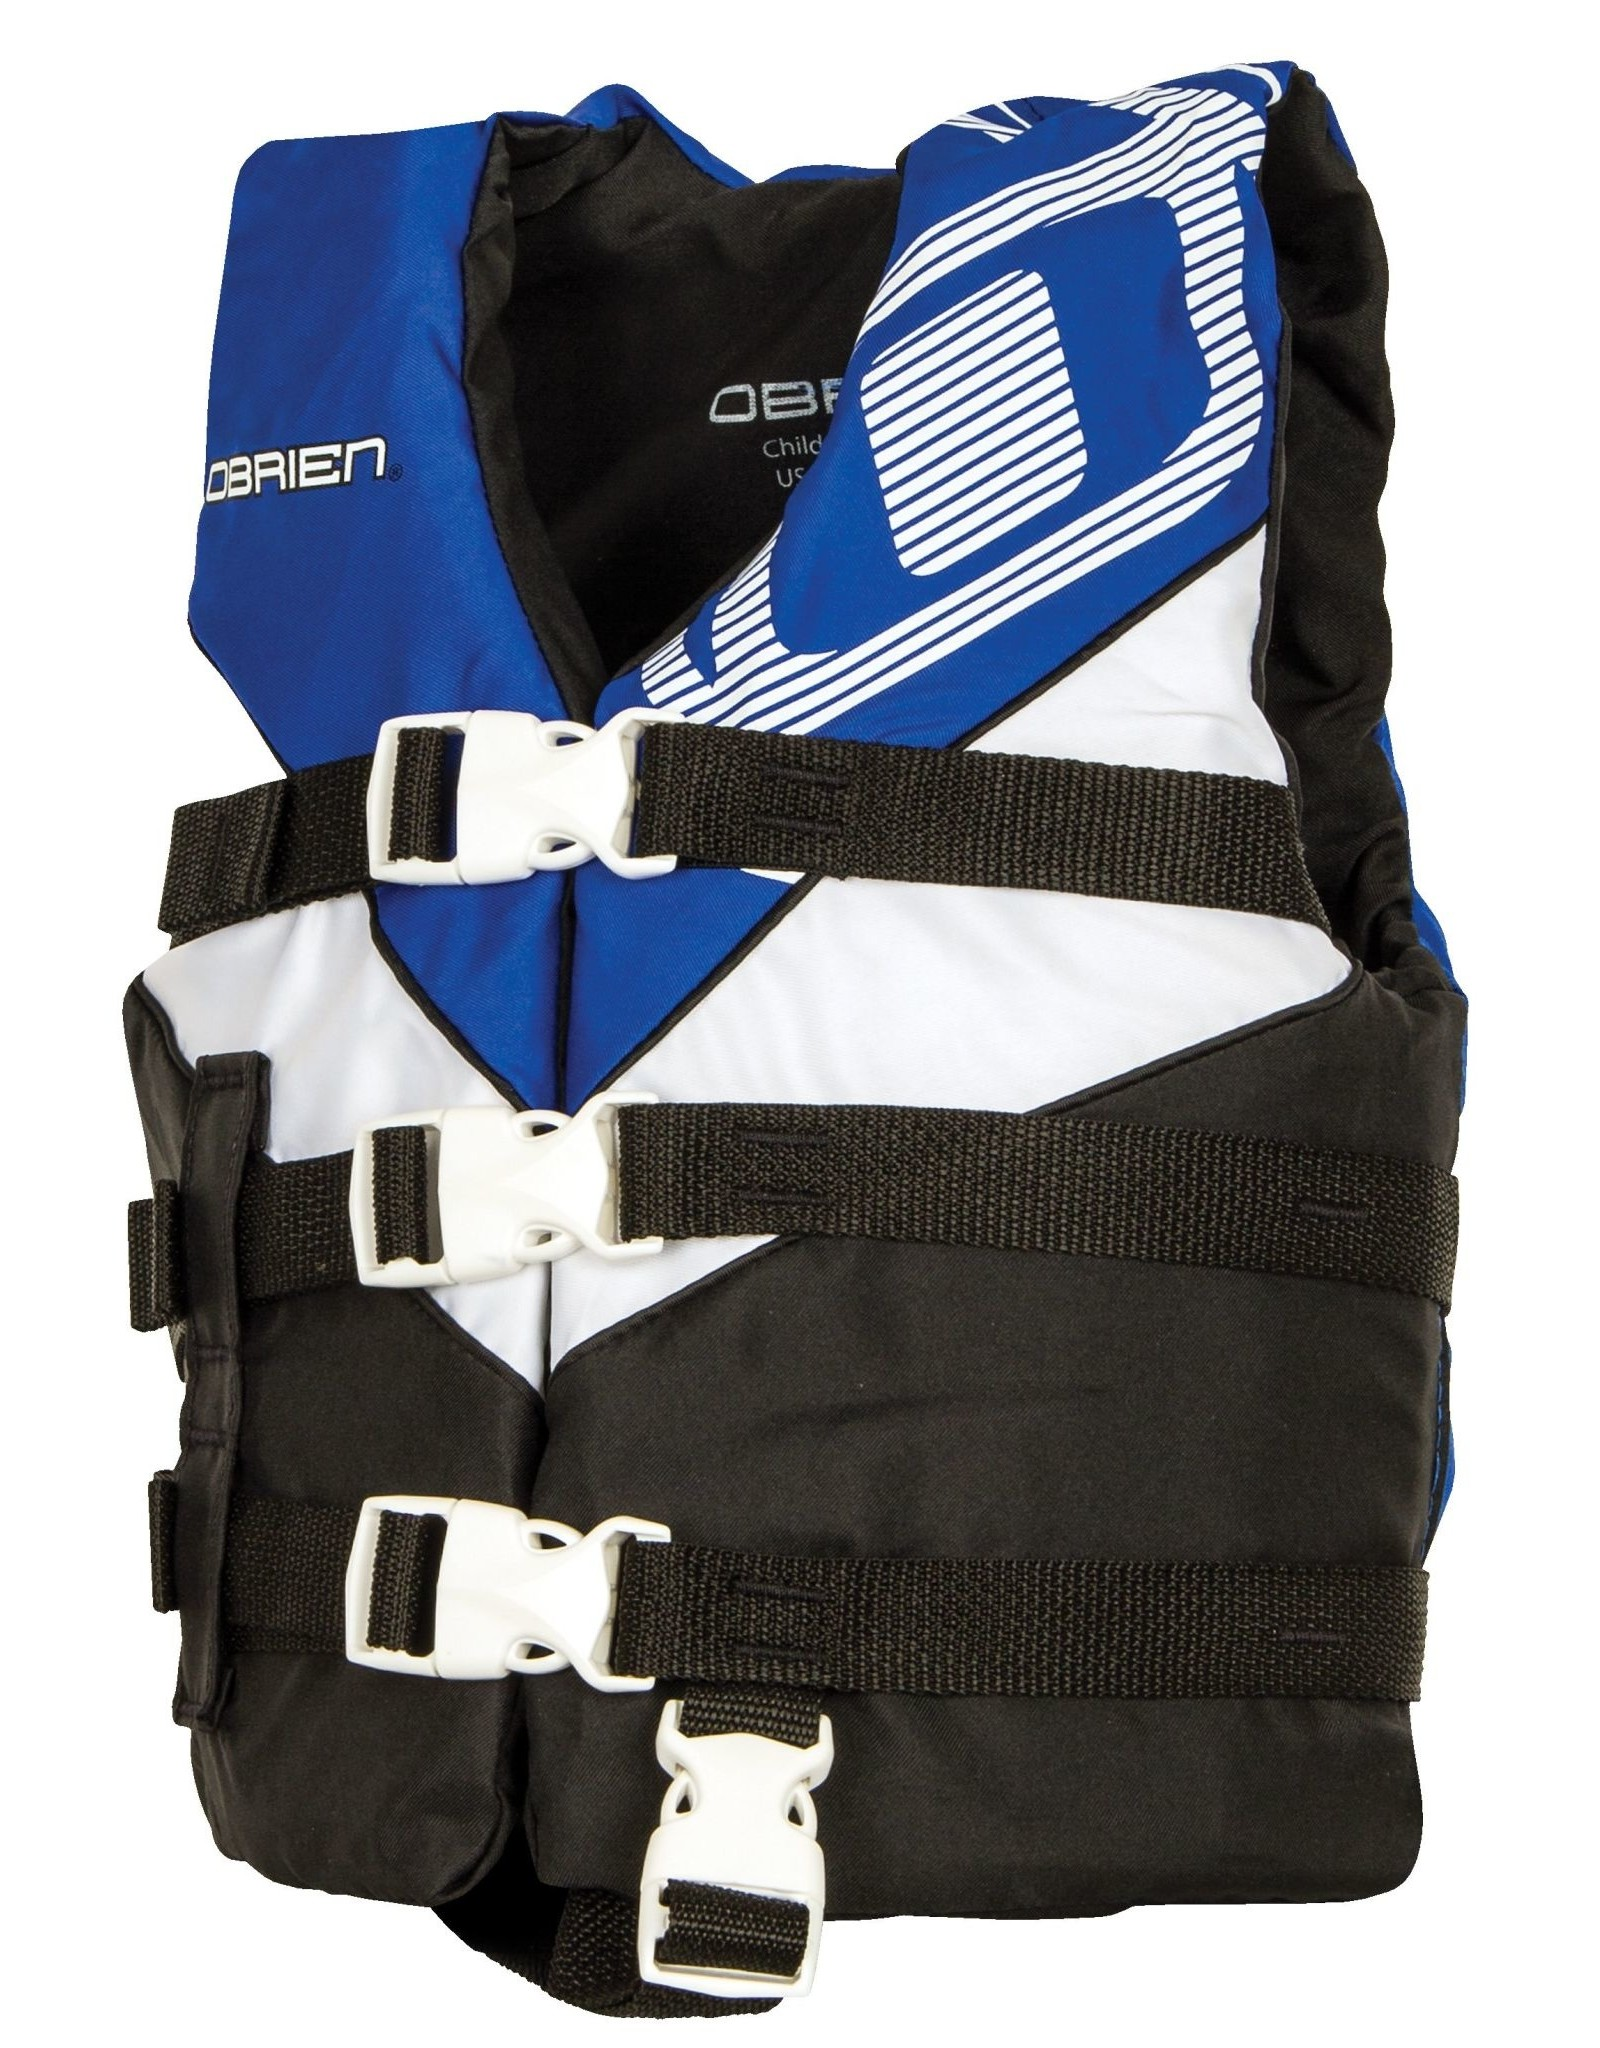 O'Brien Child Nylon, Blue-(30-50 lbs)